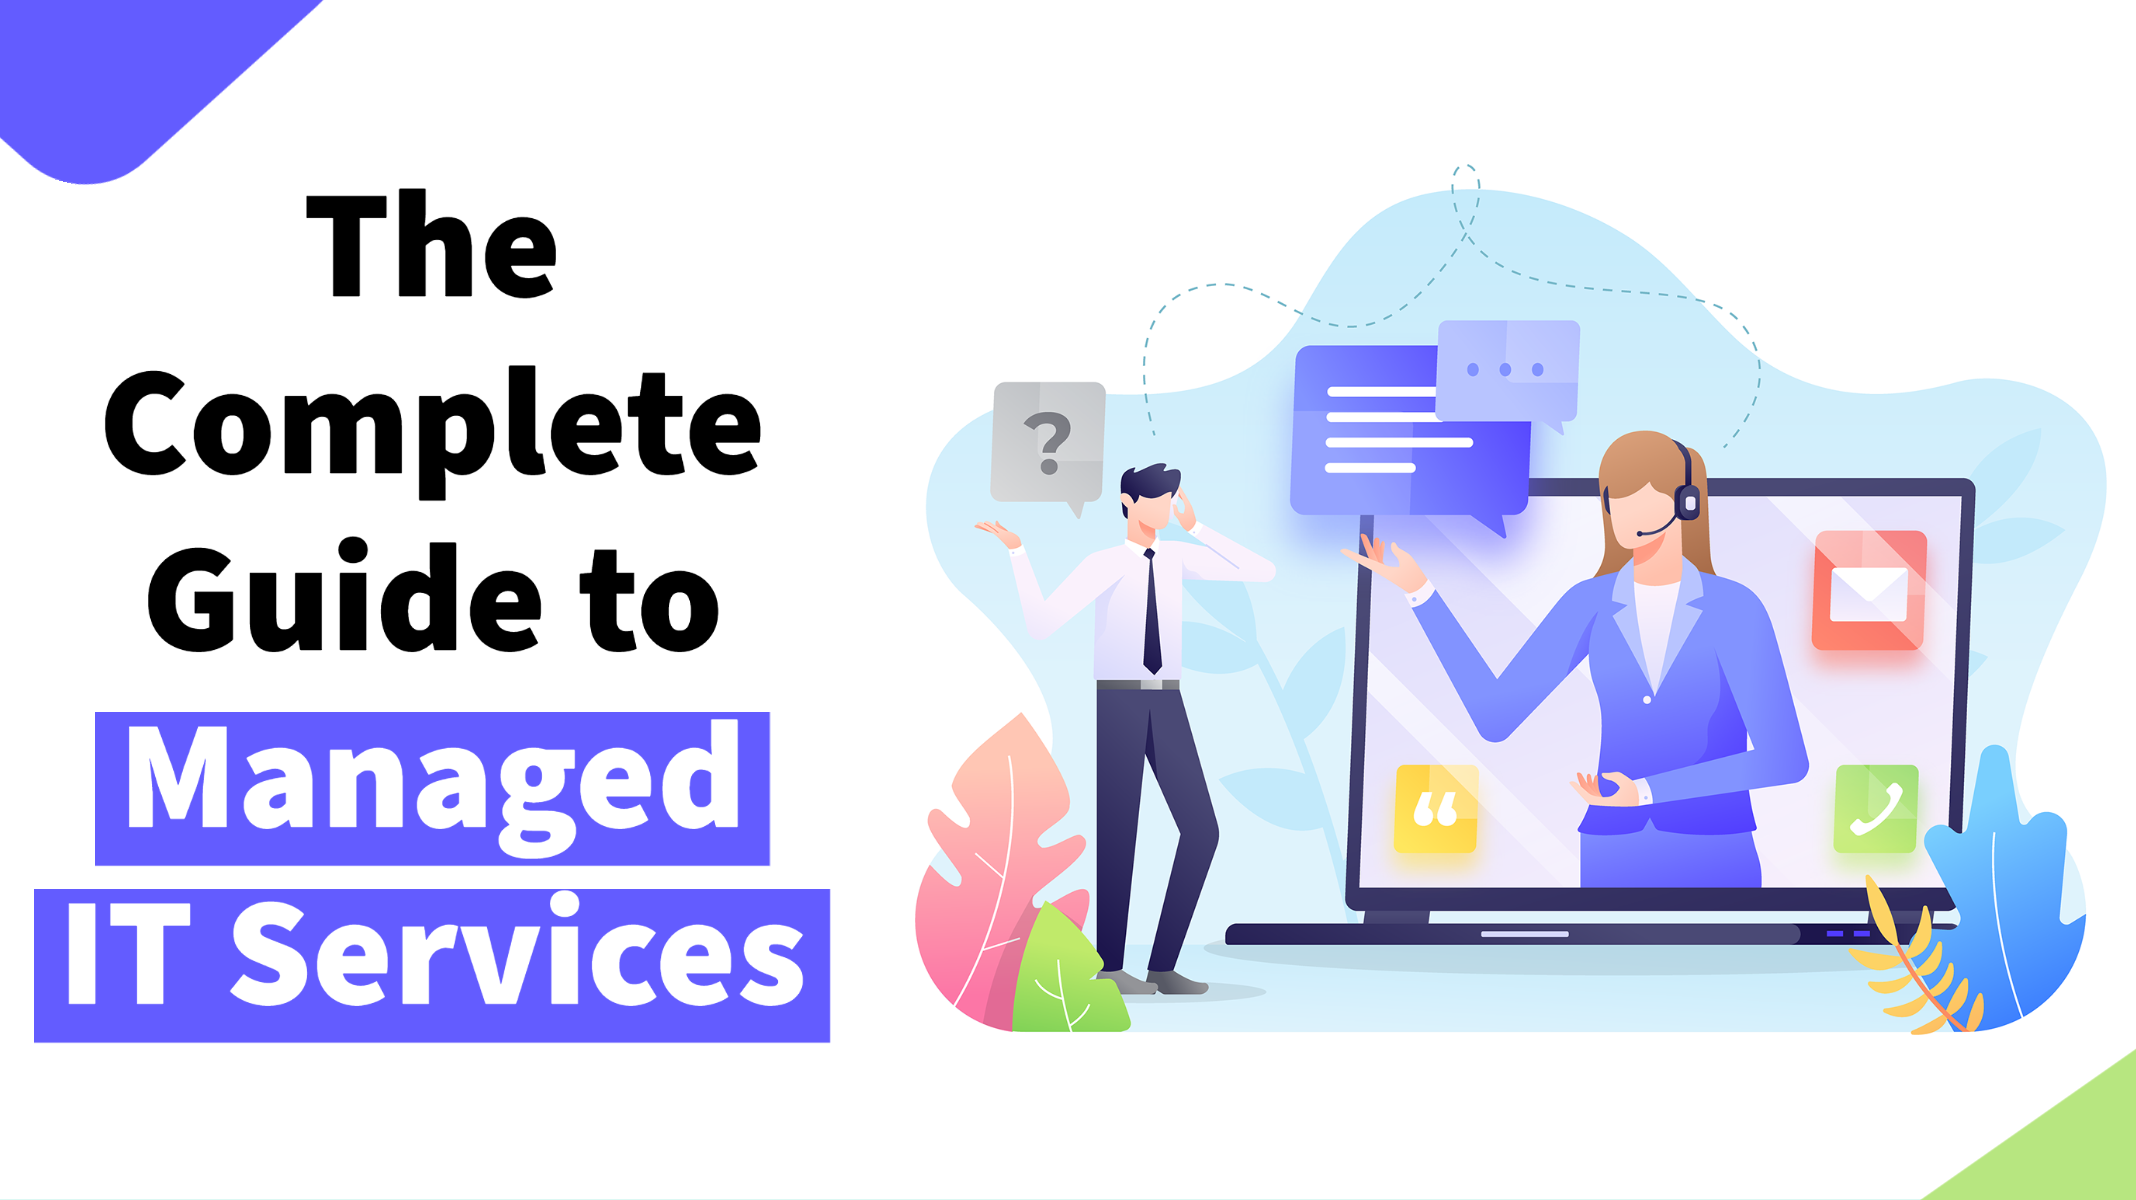 img-blog-the-complete-guide-to-managed-it-services-in-2021-everything-you-need-to-know-to-partner-with-the-best-provider